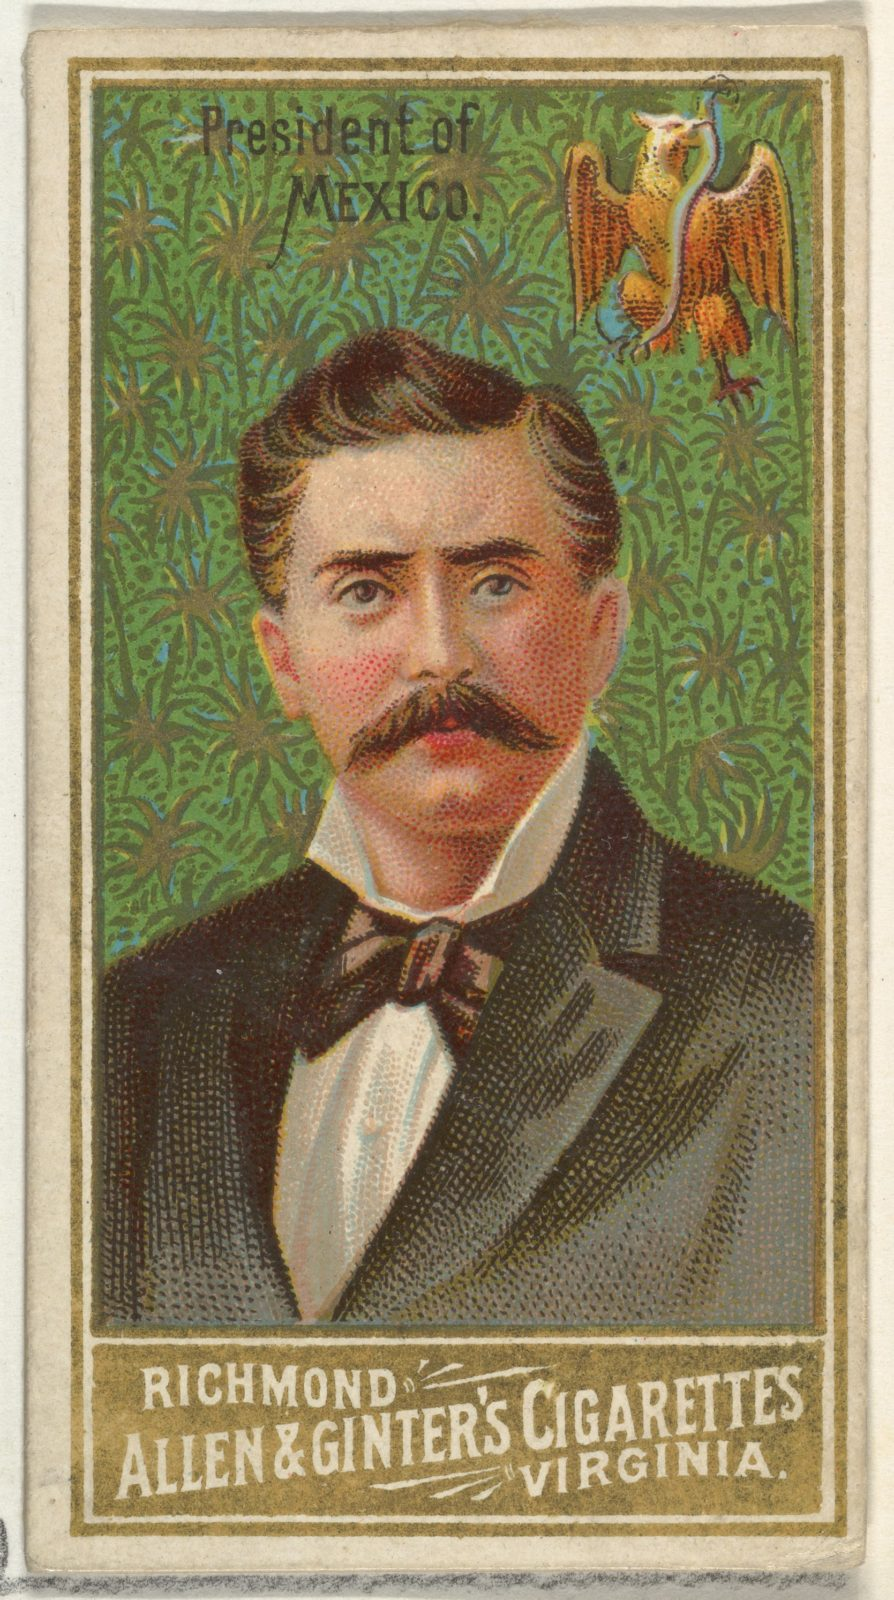 President of Mexico, from World's Sovereigns series (N34) for Allen & Ginter Cigarettes